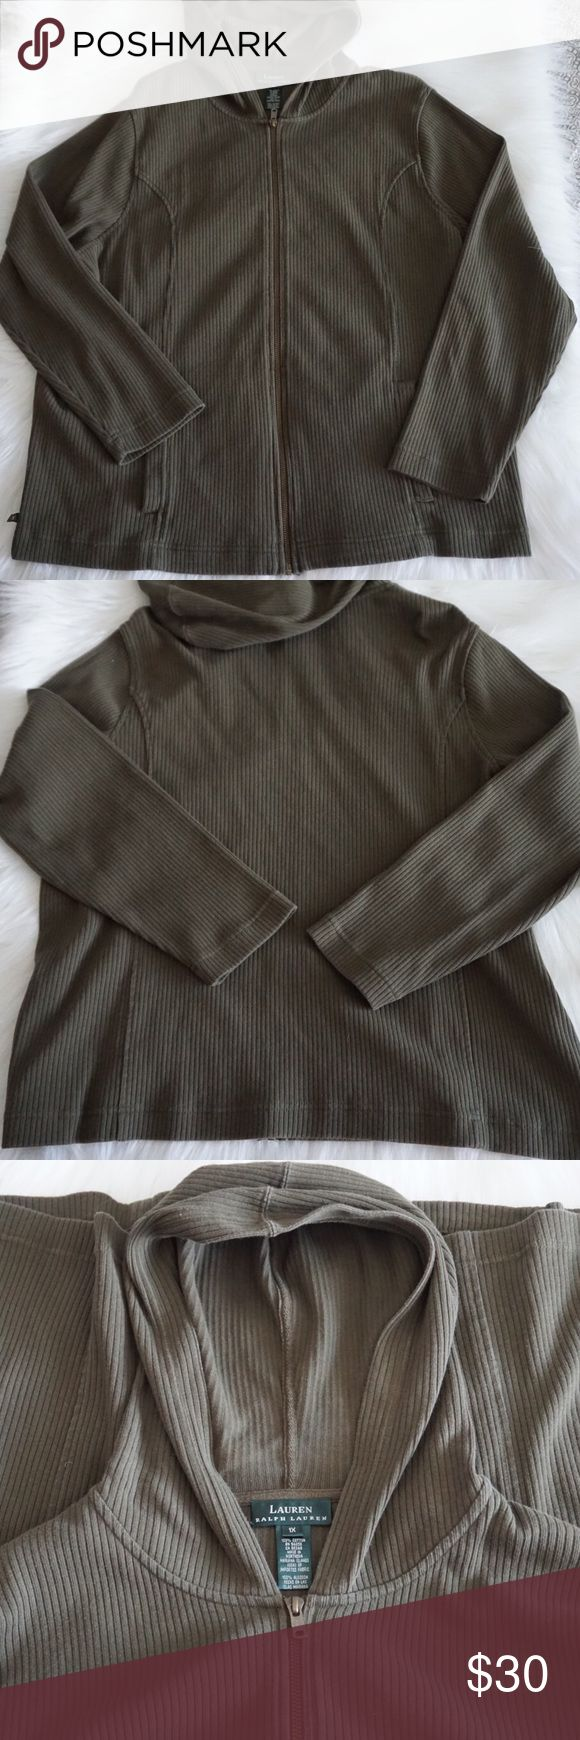 Lauren Ralph Lauren Olive Green Zip Up Hoodie 1X 💚Really cool and comfy olive green zip up hoodie! Has pockets! Measurements: sleeves- 23.5 inches, armpit to armpit- 25 inches, top to bottom- 26 inches from tag.🚫 trades! 💚 Lauren Ralph Lauren Tops Sweatshirts & Hoodies